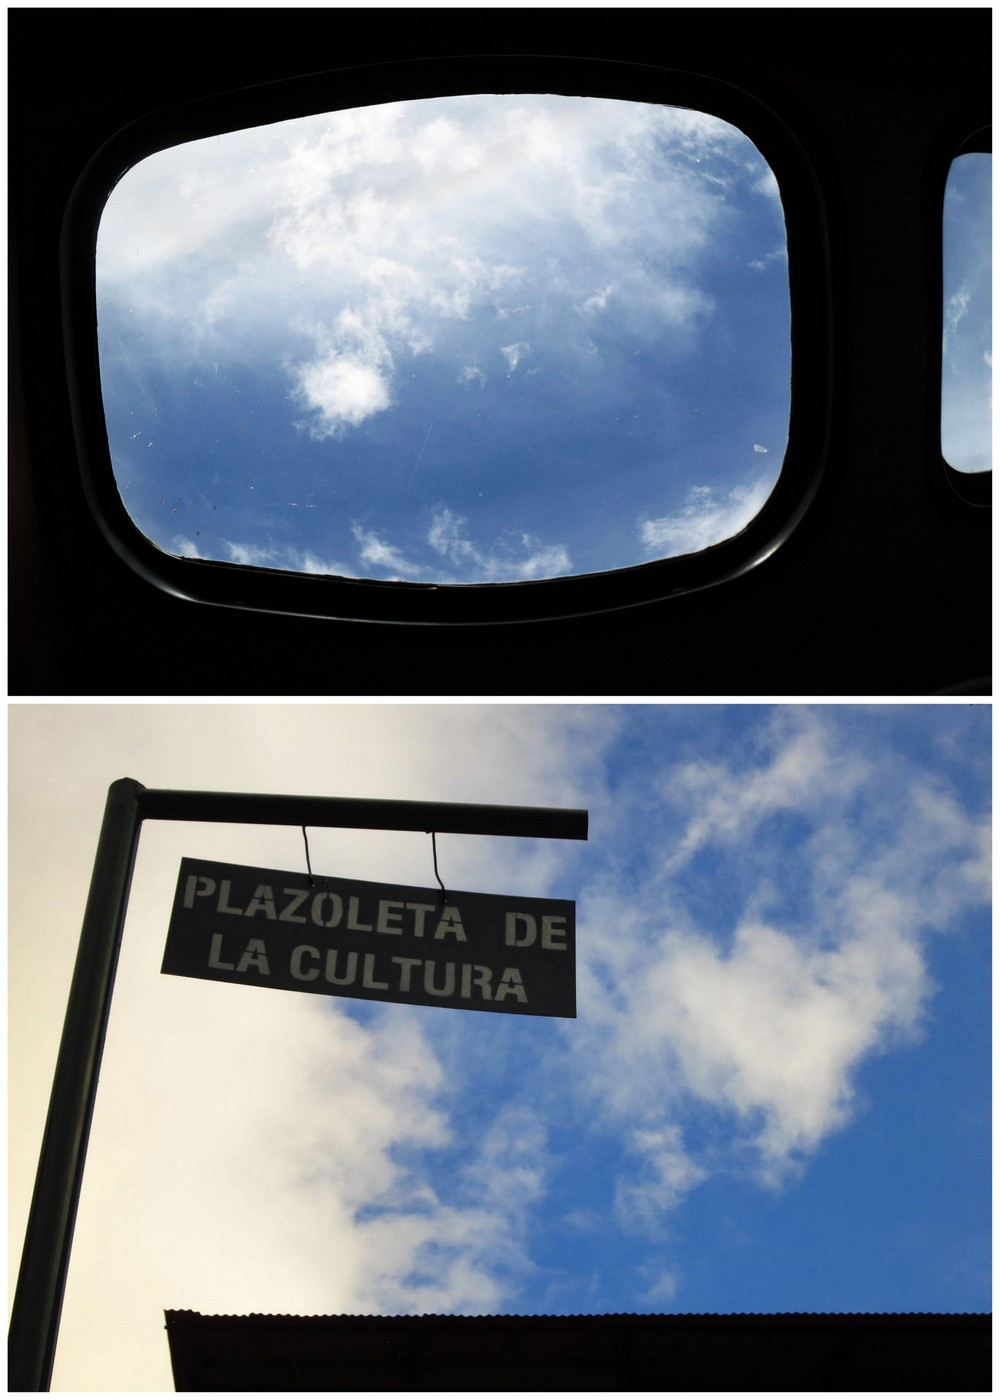 Take the train from Cuzco to Aguas Calientes and you'll get the best moonroof train ride